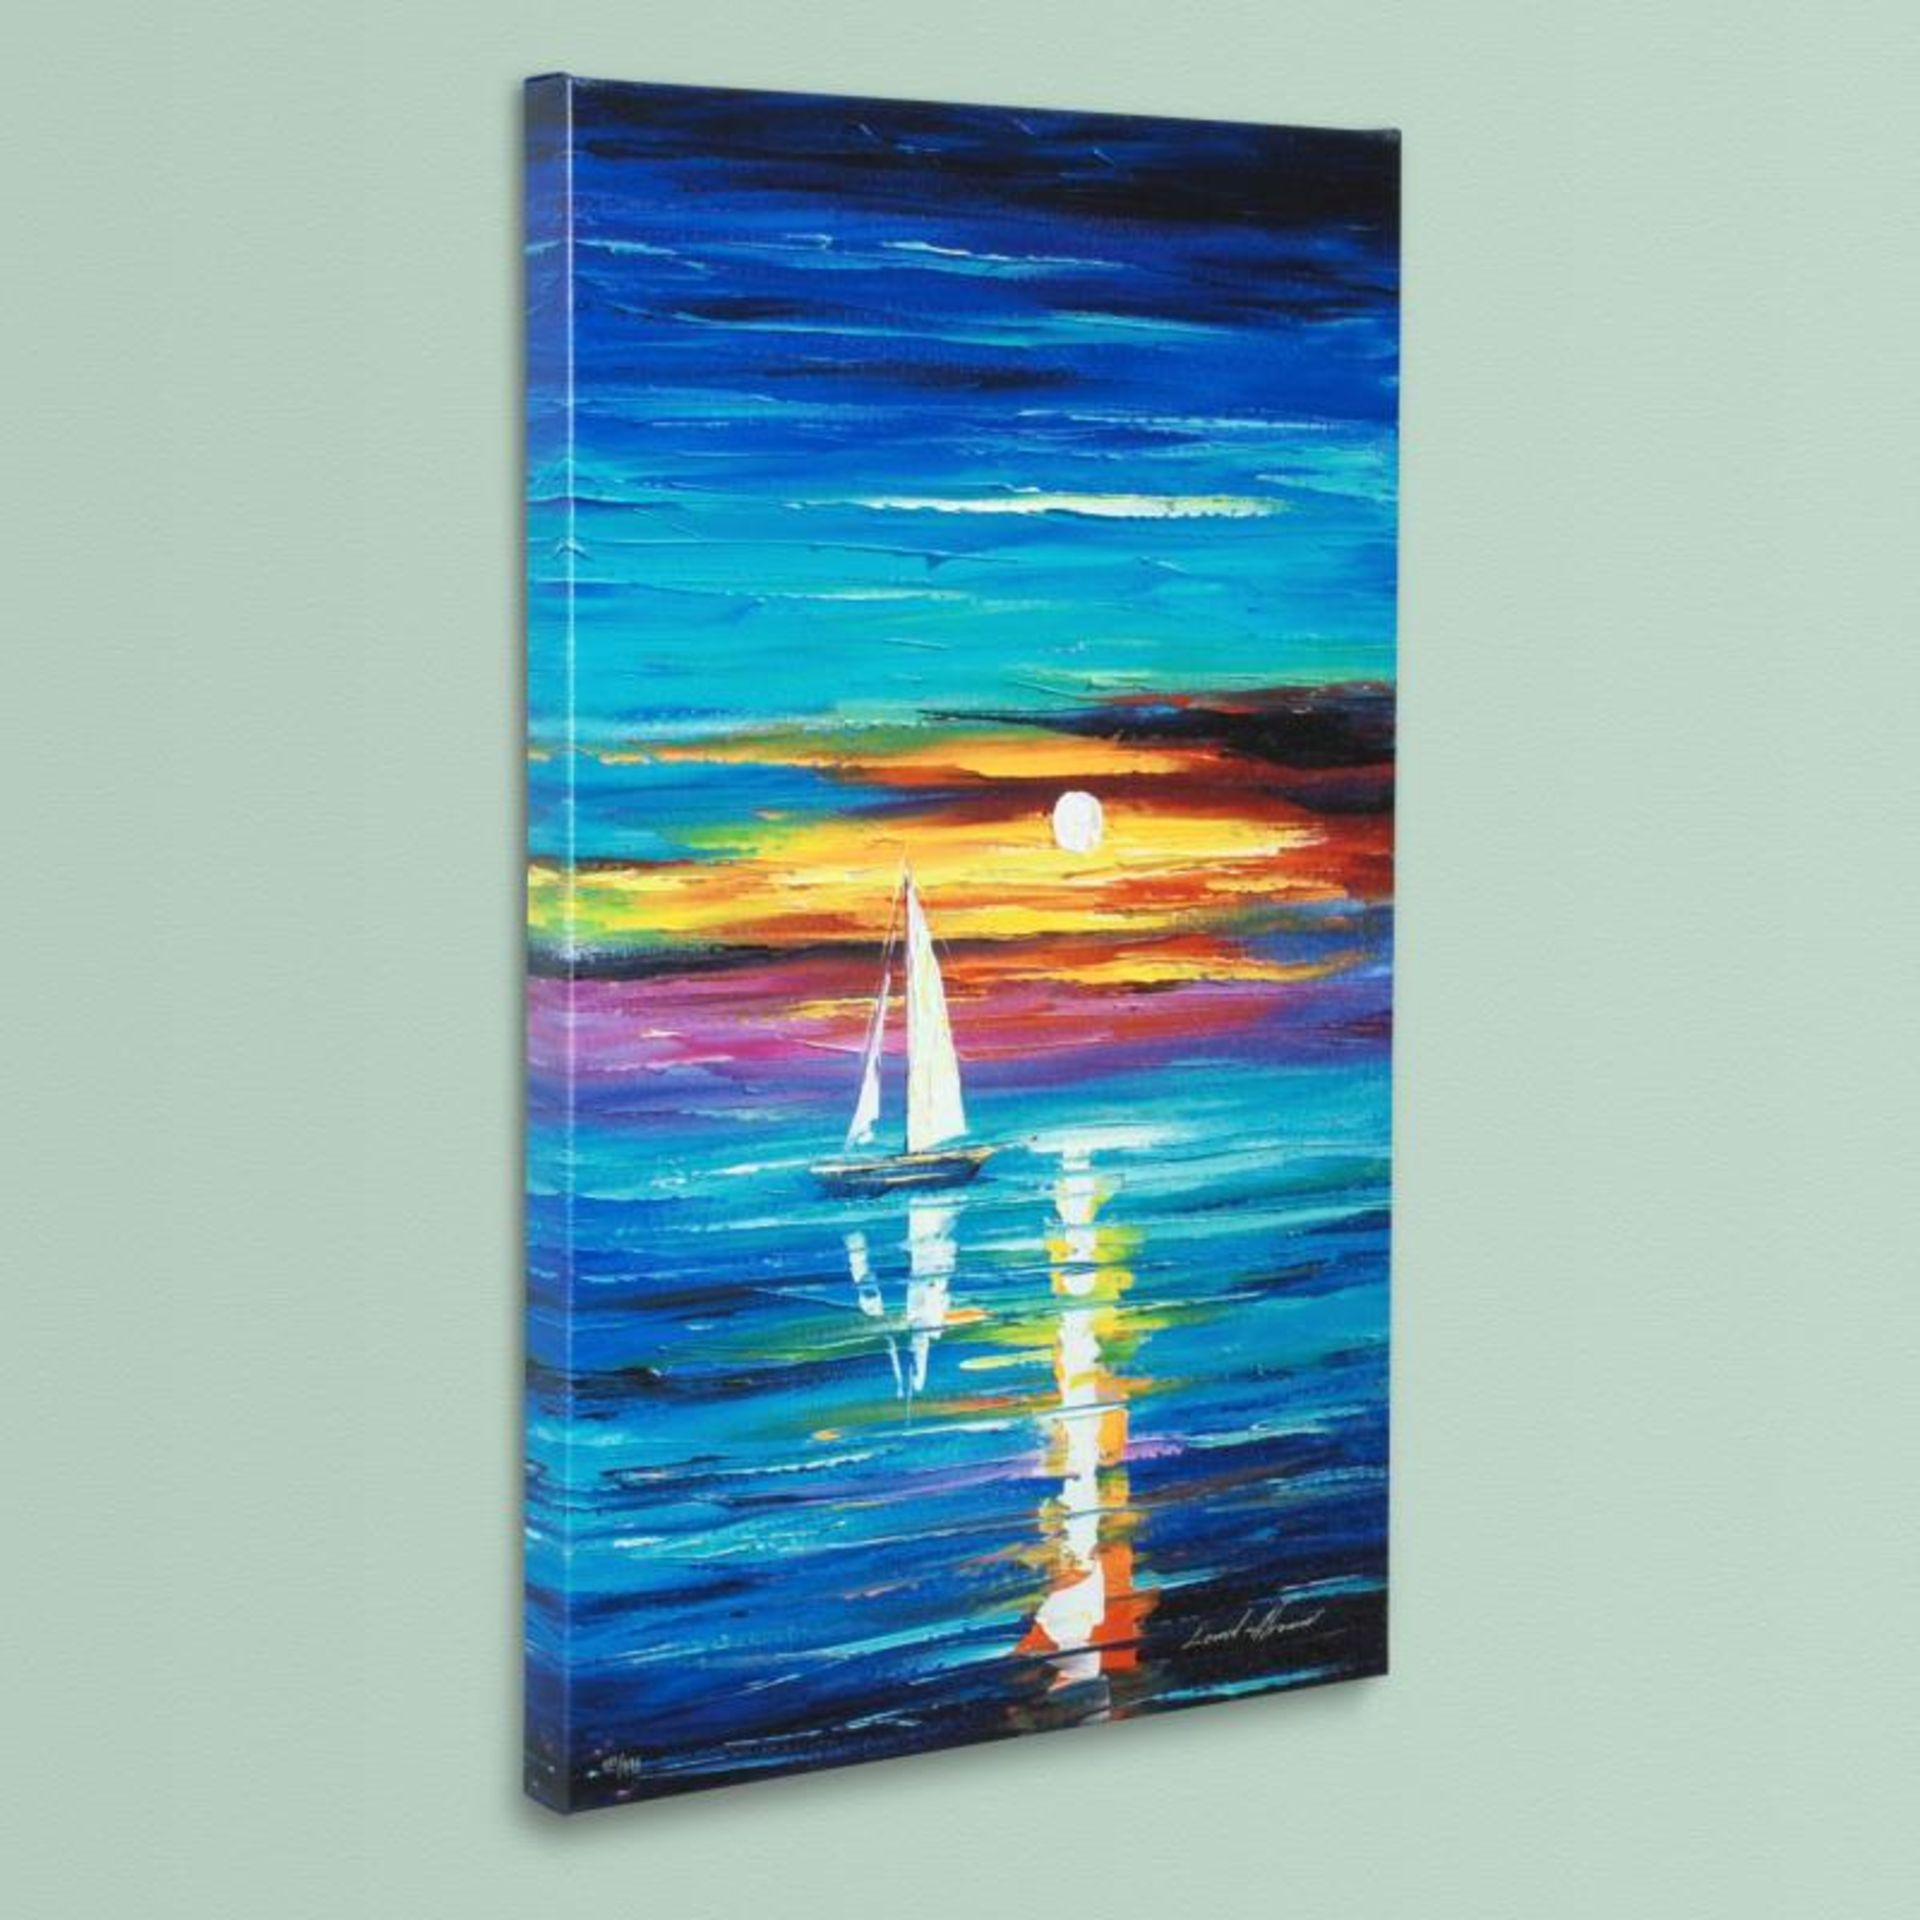 """Leonid Afremov (1955-2019) """"Reflection"""" Limited Edition Giclee on Canvas, Number - Image 3 of 3"""